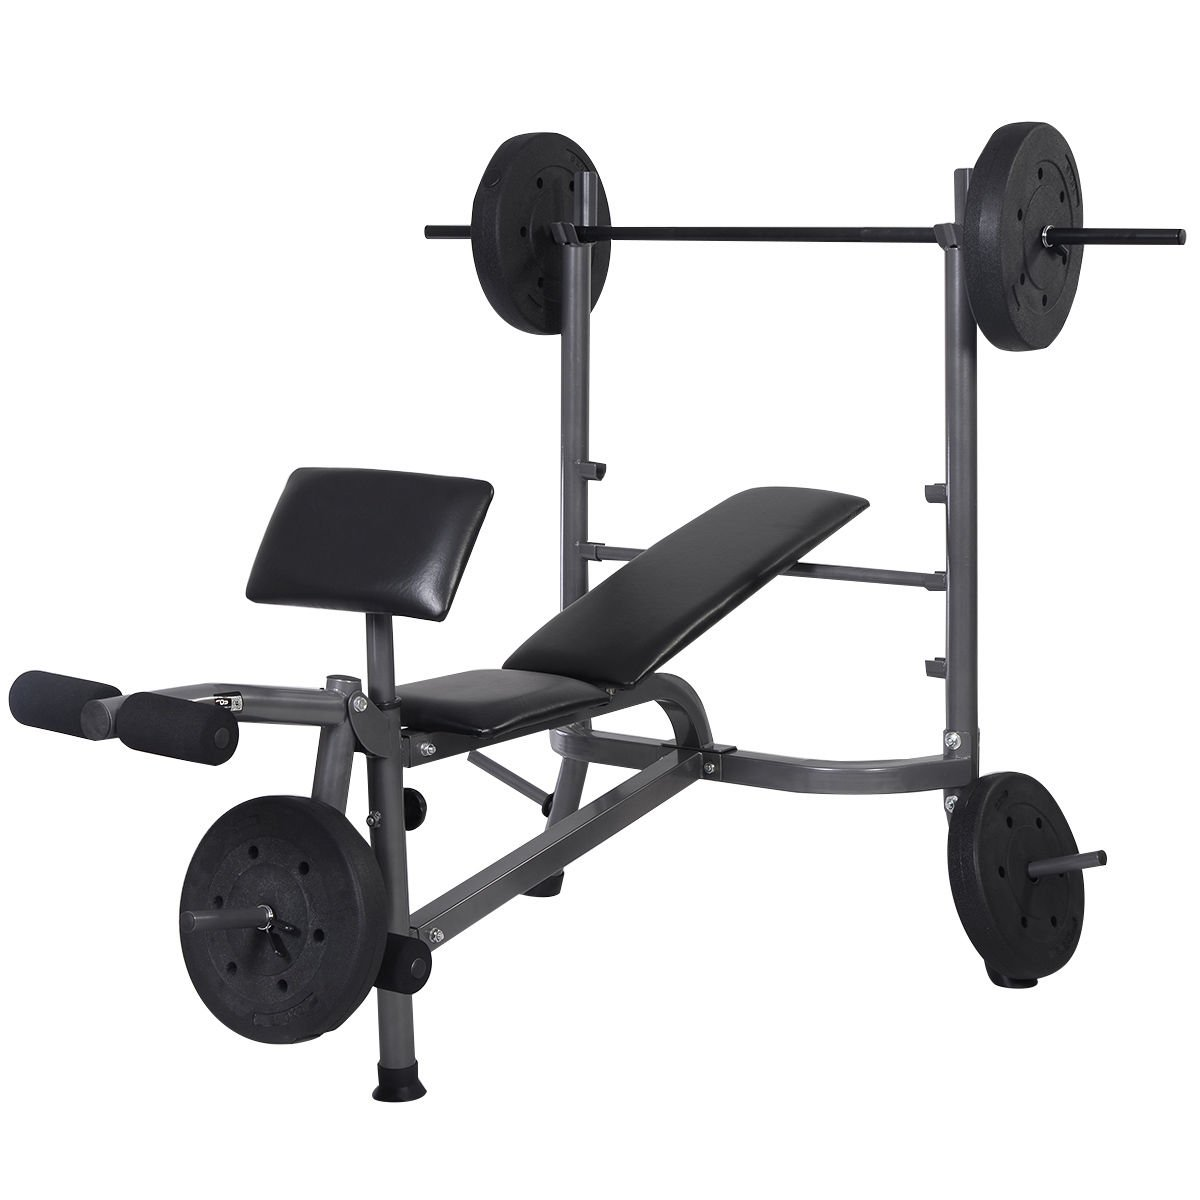 Goplus Standard Weight Lifting Bench Set Incline/ Flat Adjustable with 4 Weights/ Leg Developer/ Dumbbell Bar